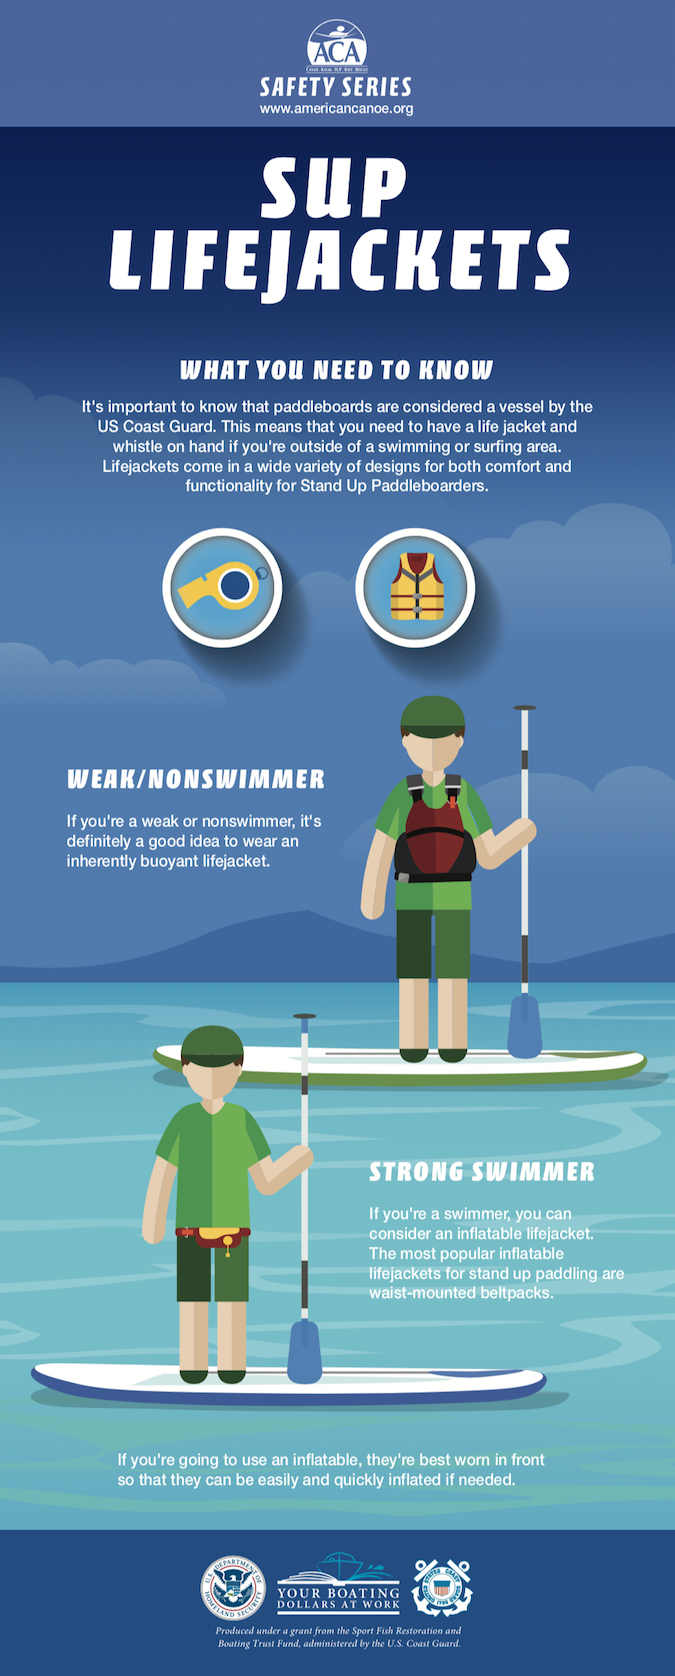 American Canoe Association Paddling Safety Series